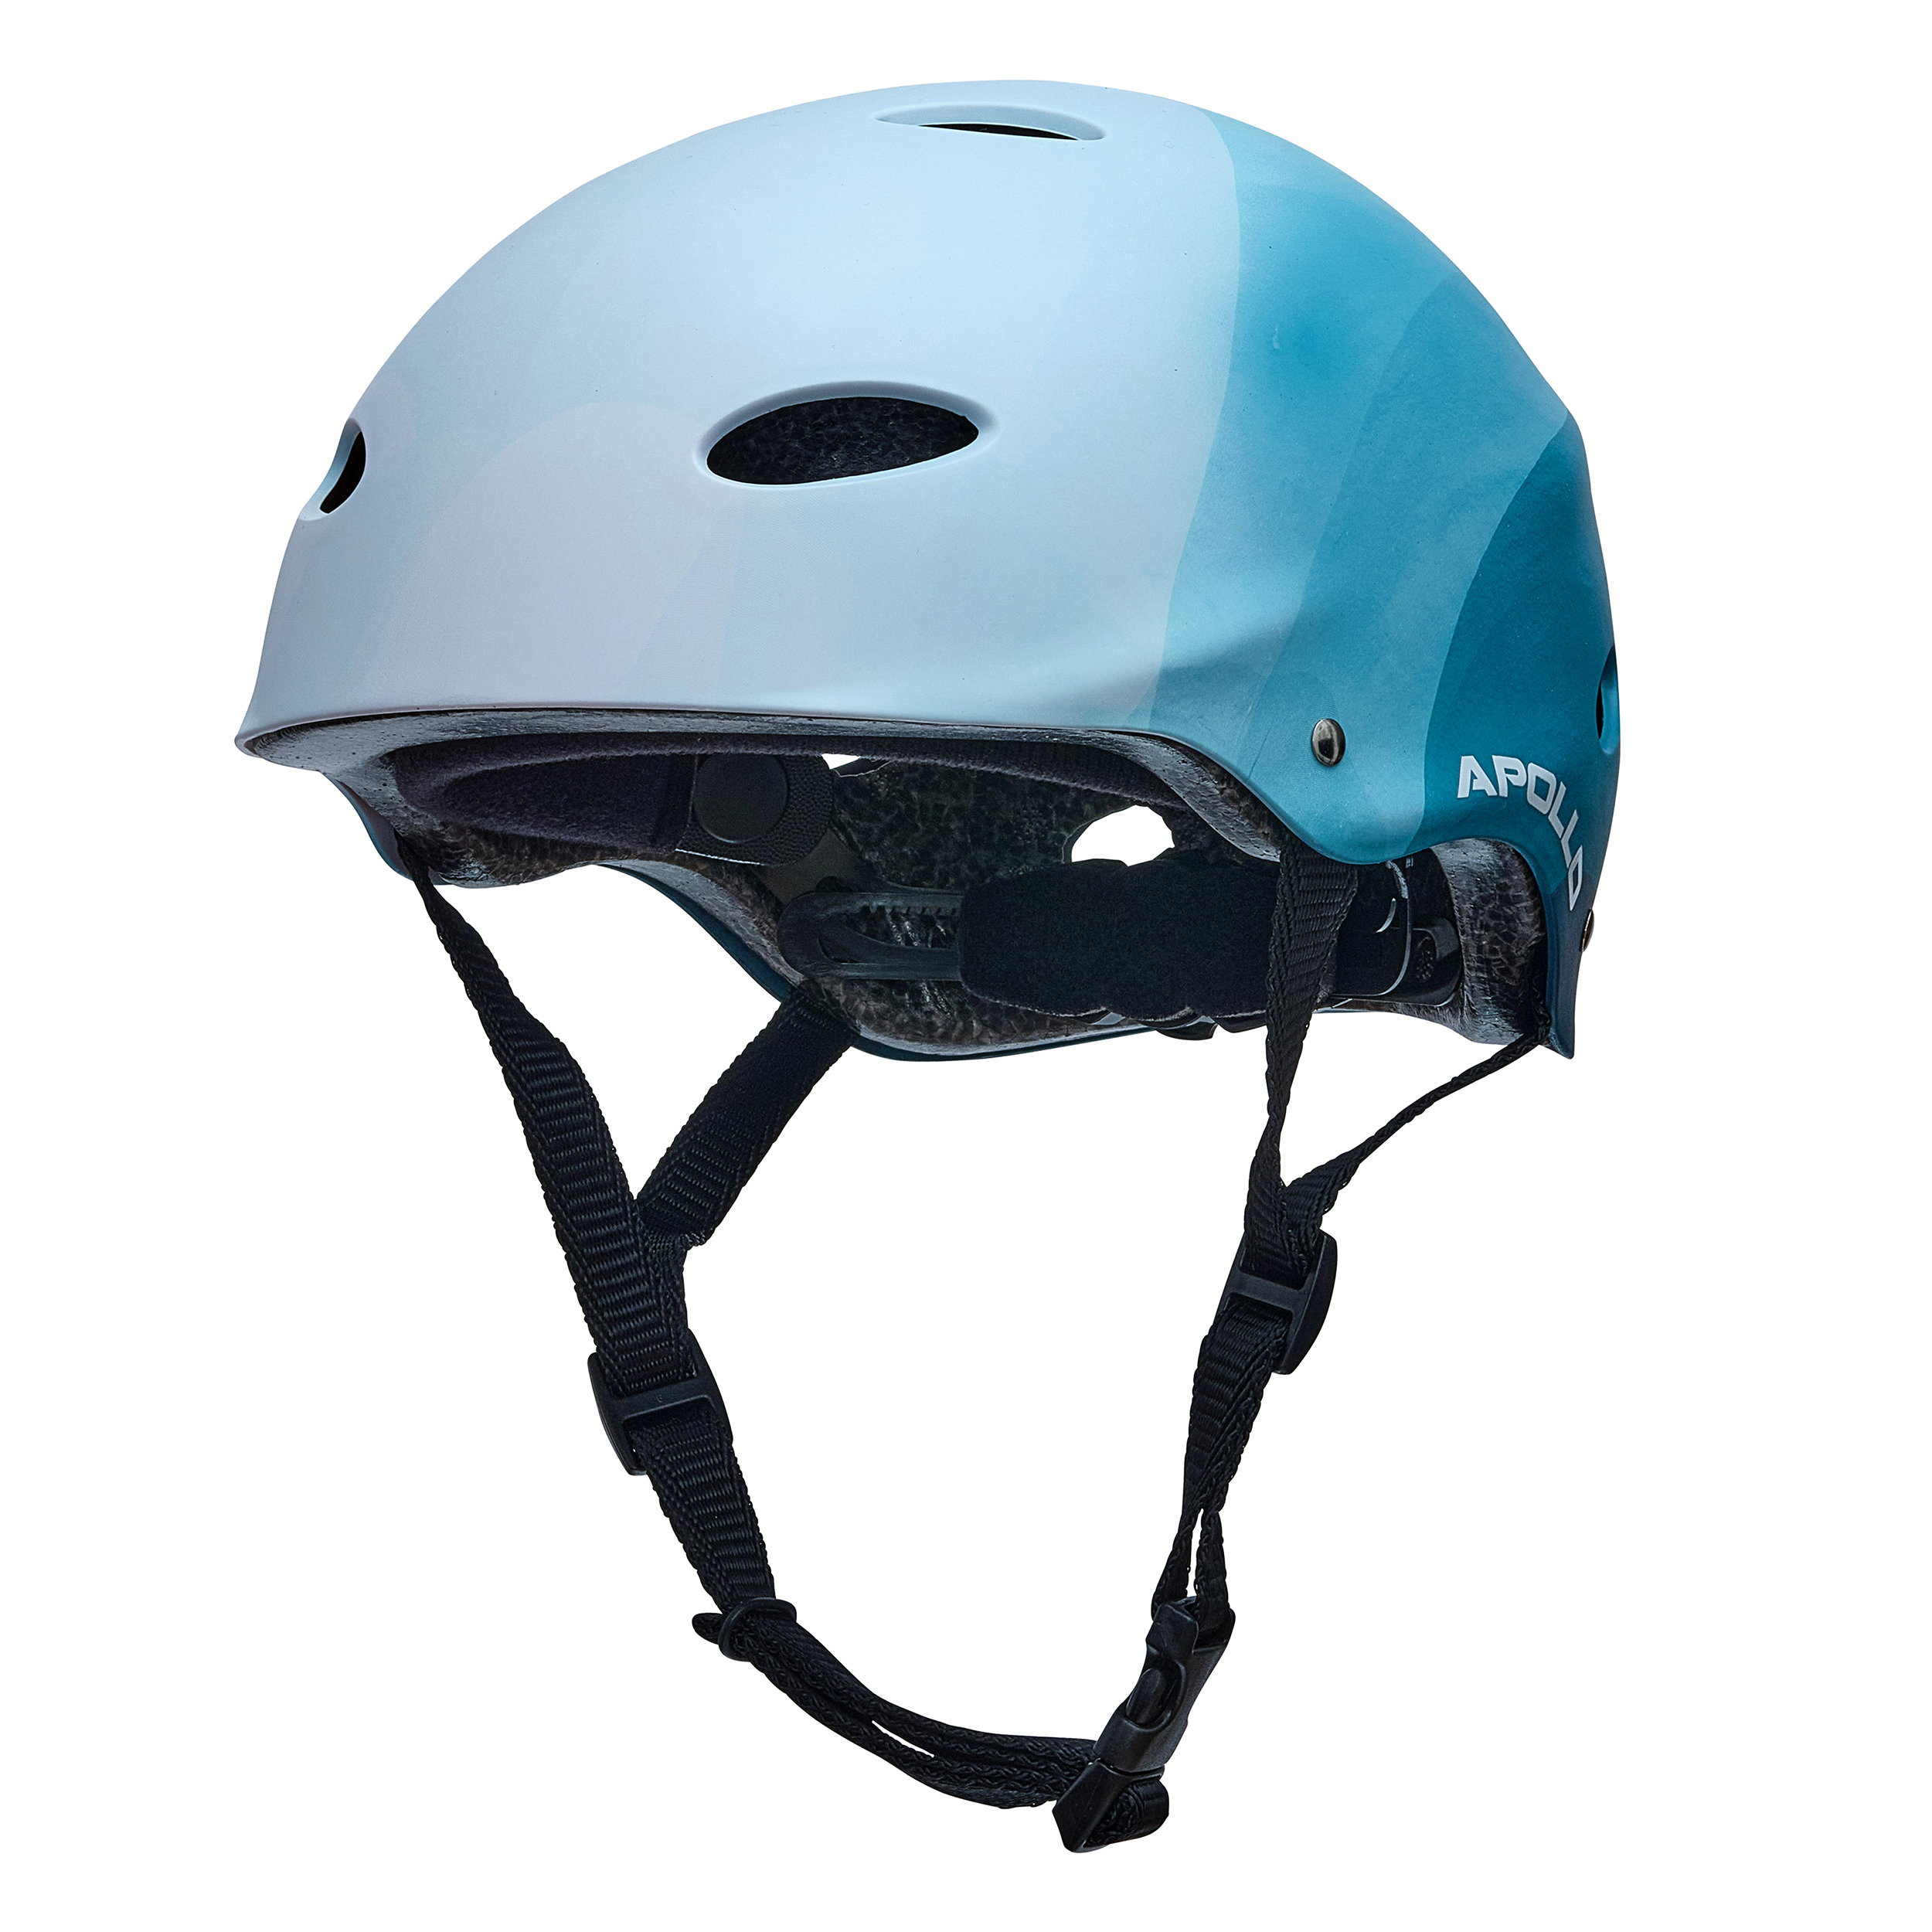 "Apollo Skate-Helm - ""Blue Wave"" Größe S/M verstellbar (48-55 cm)"